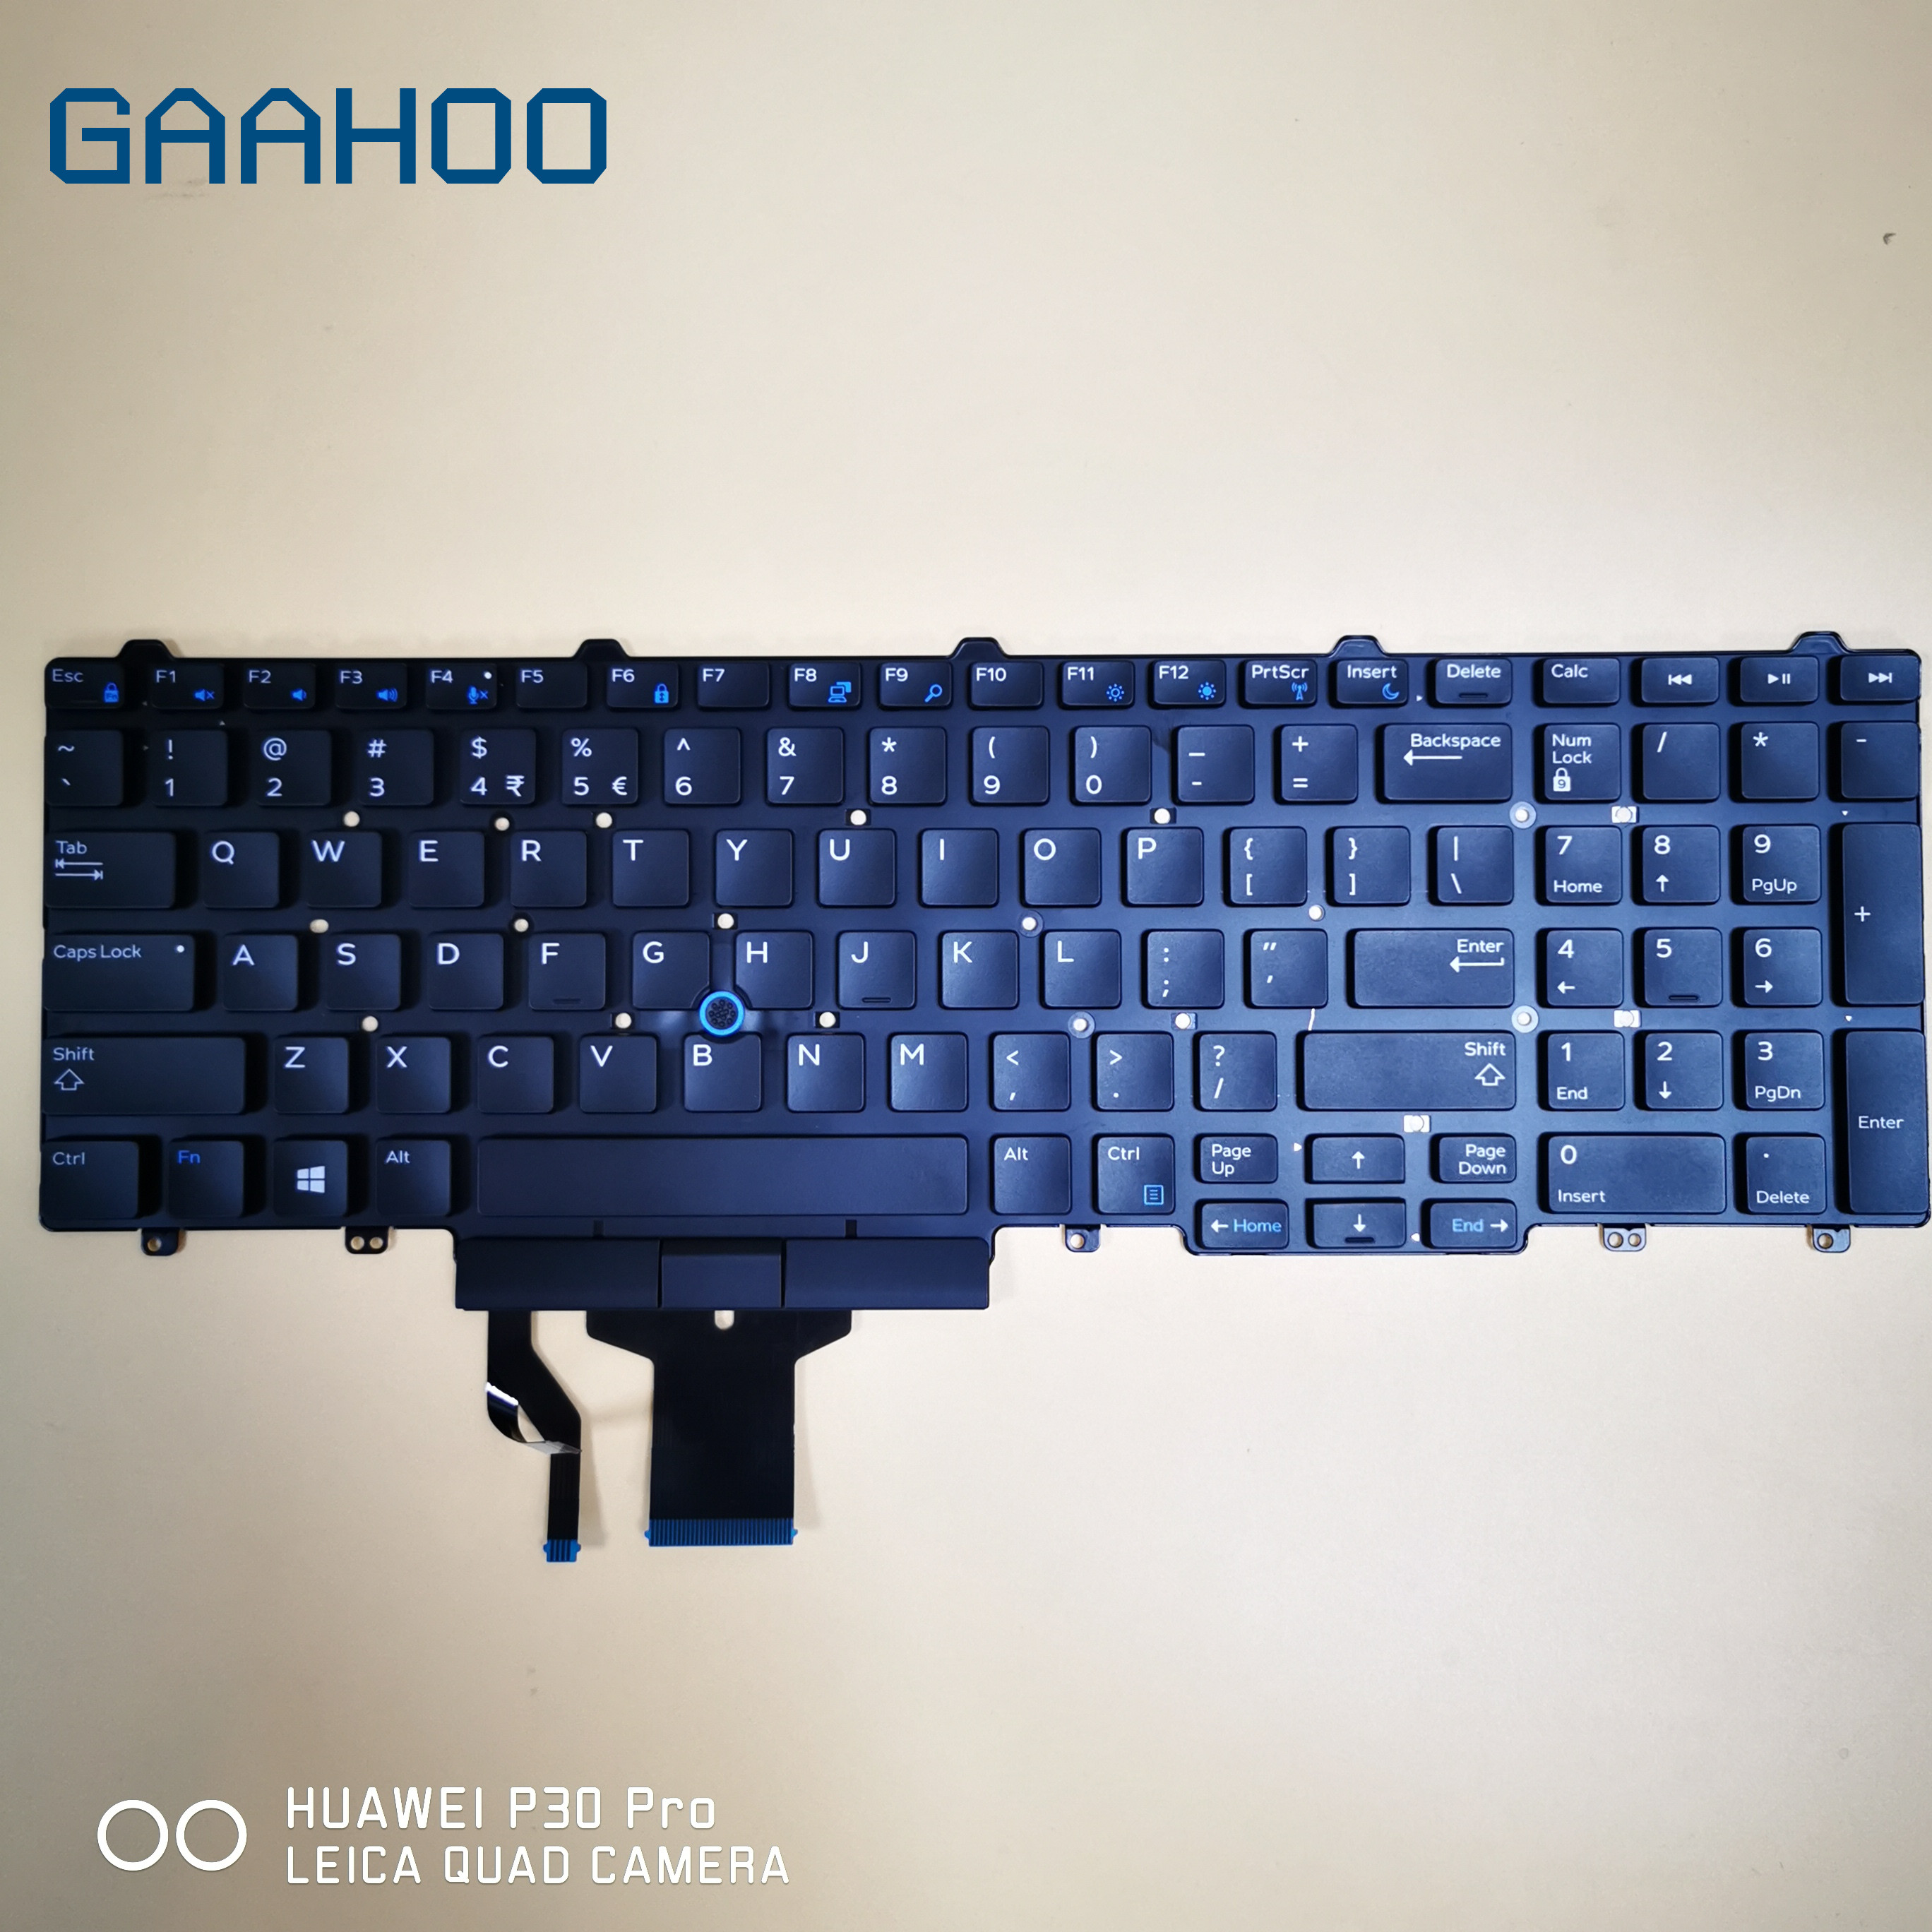 US <font><b>keyboard</b></font> for <font><b>Dell</b></font> Latitude E5550 5570 5580 5590 PRECISION 3510 <font><b>3520</b></font> 3530 7510 7520 7530 7710 7720 LAPTOP w/ TRUCKPOINT image